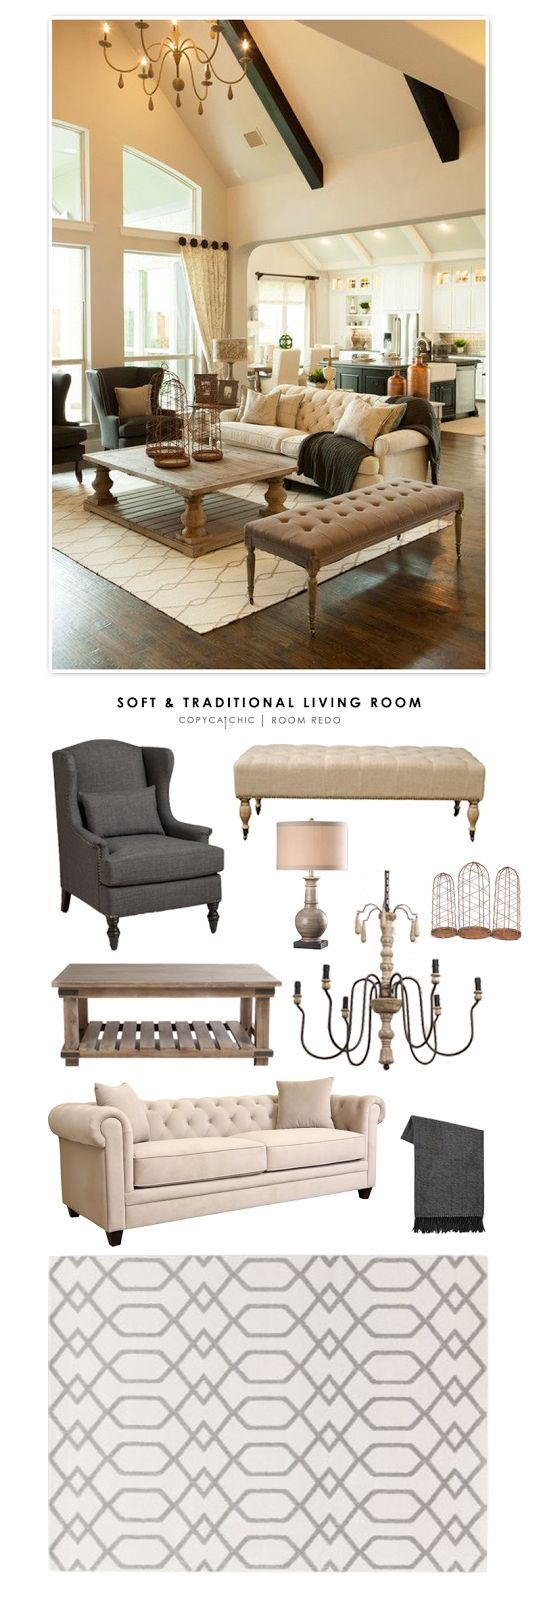 Copy Cat Chic Room Redo Best 25  Living room bench ideas on Pinterest Bench in living